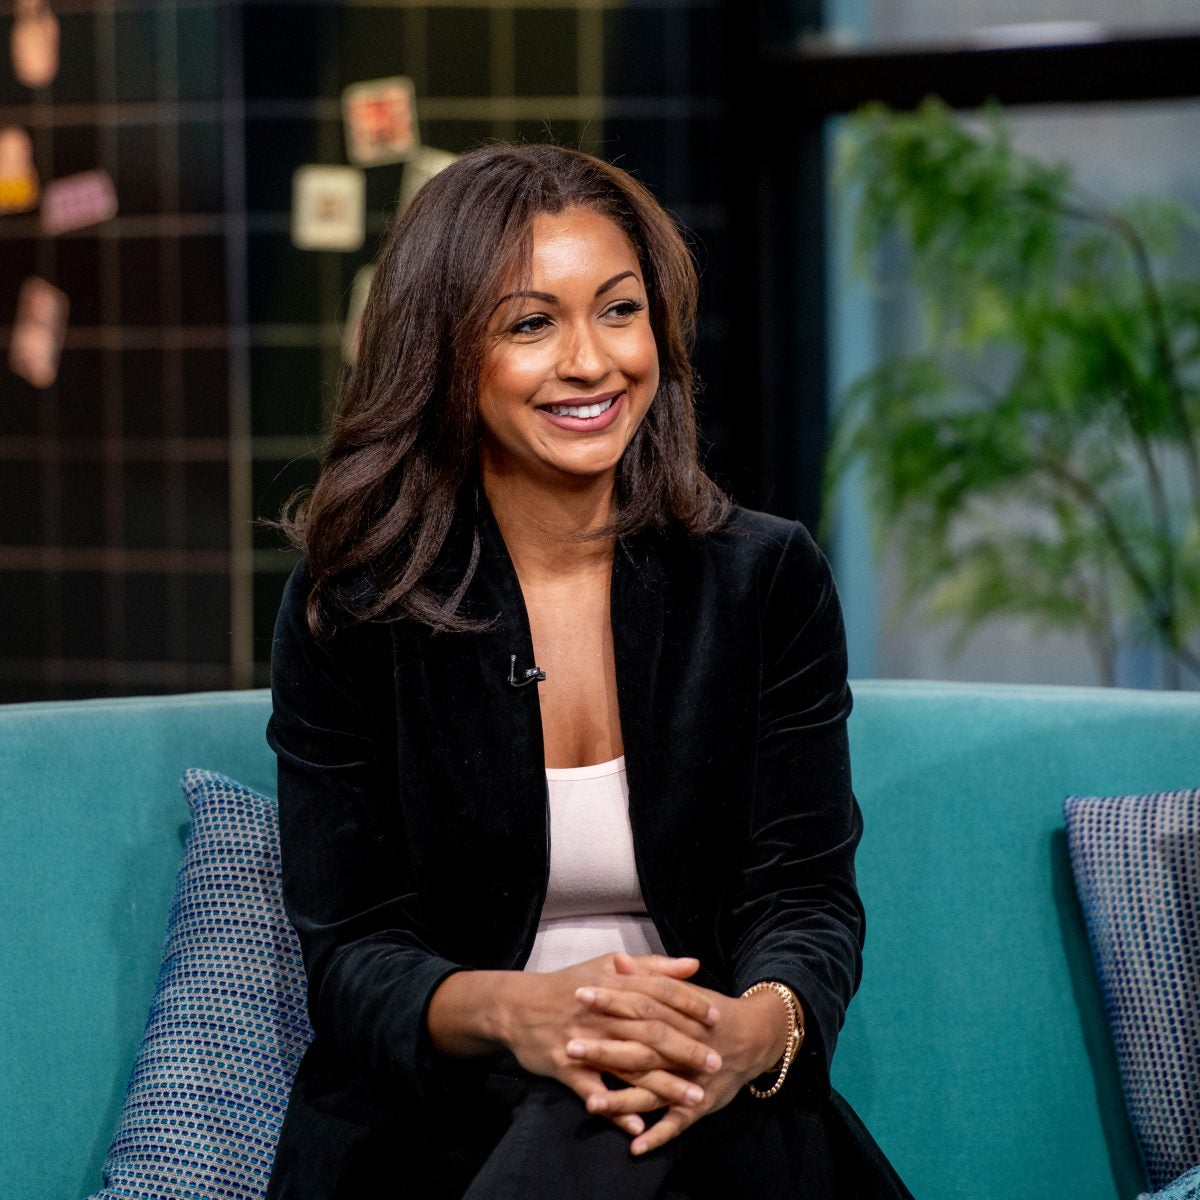 5 Things To Know About Eboni K. Williams, The Newest 'RHONY' Cast Member